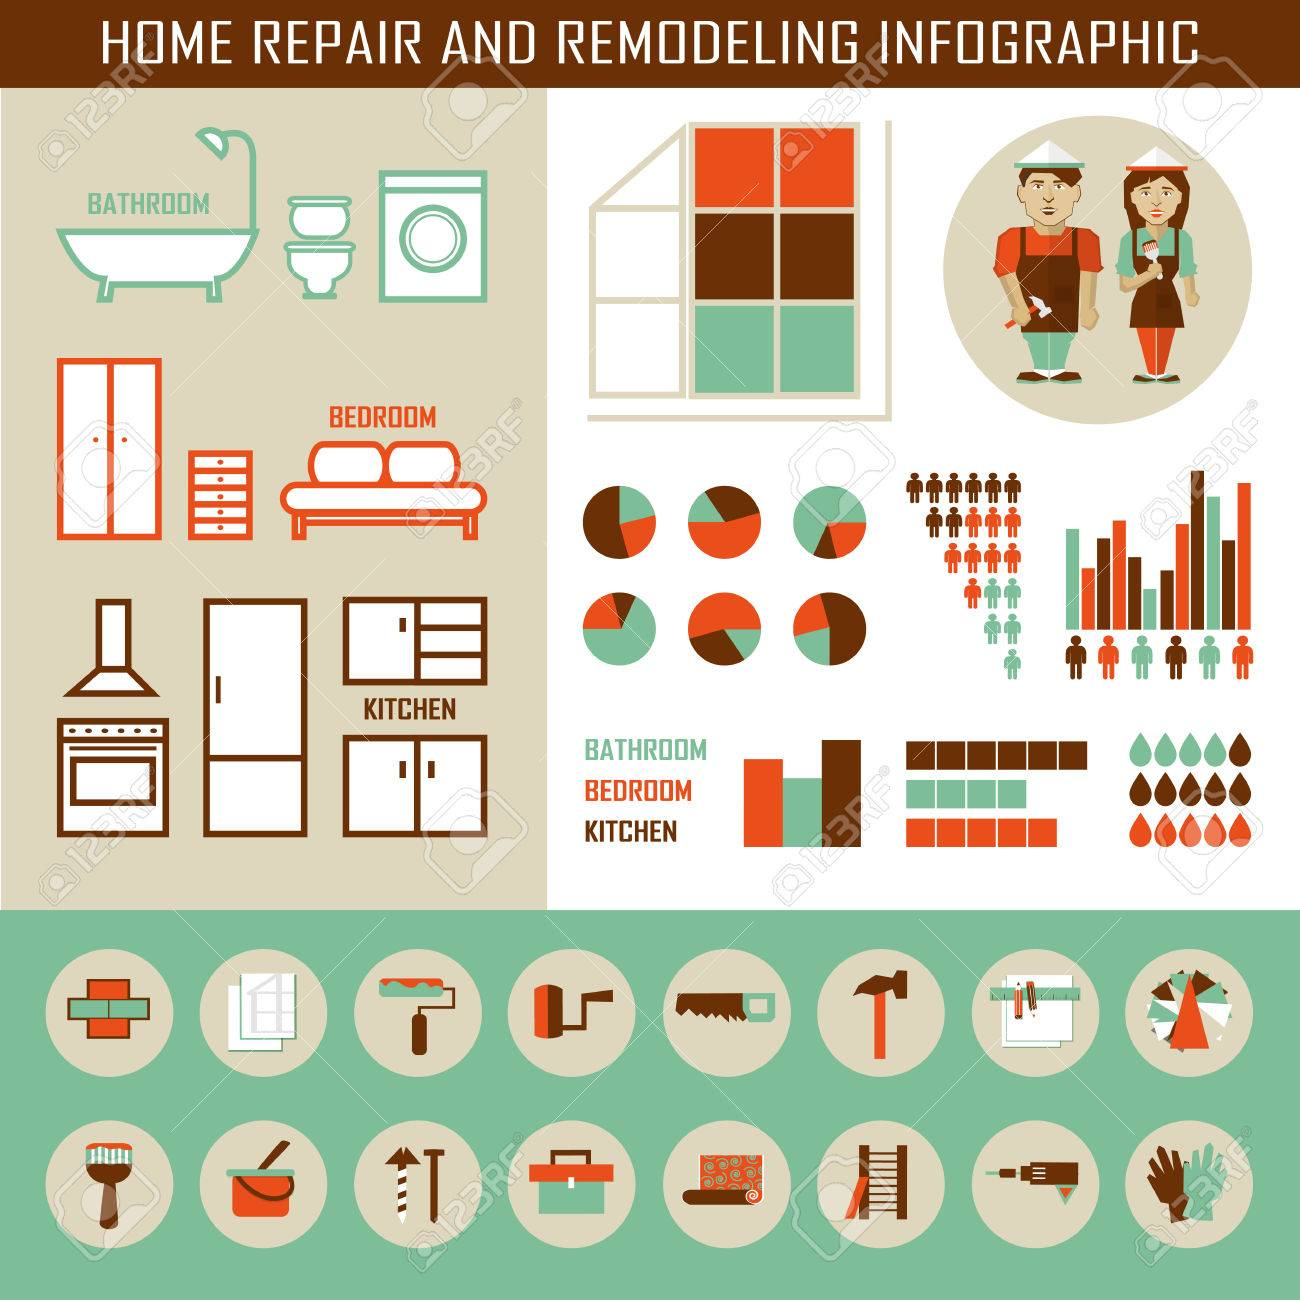 626 Bathroom Remodeling Cliparts, Stock Vector And Royalty Free ...